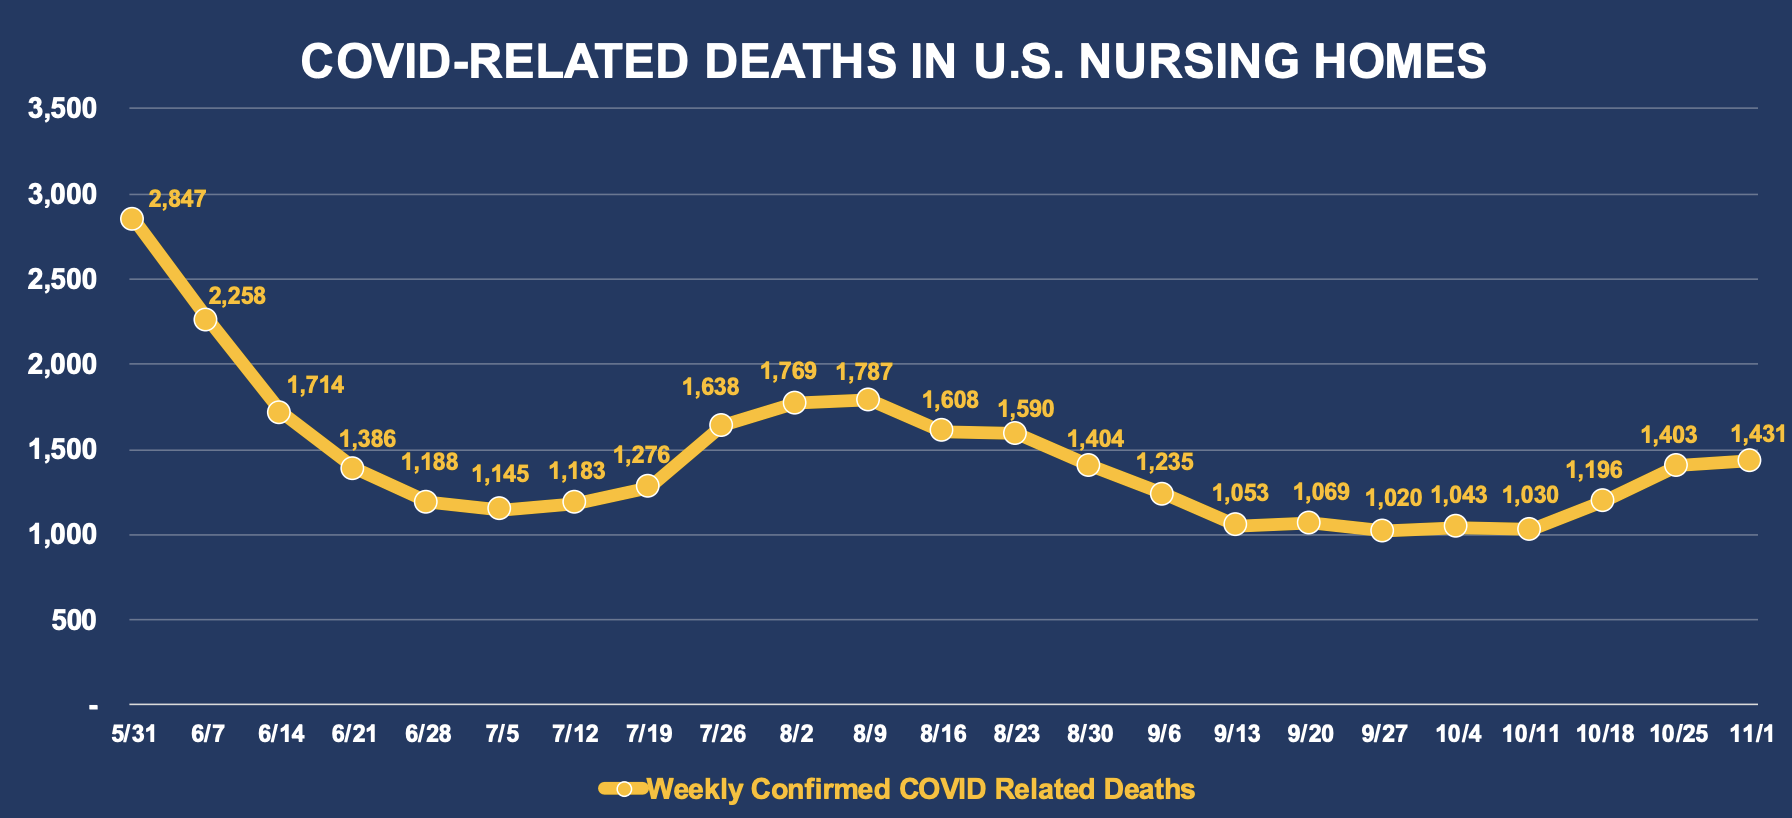 COVID-Related Deaths In U.S. Nursing Homes